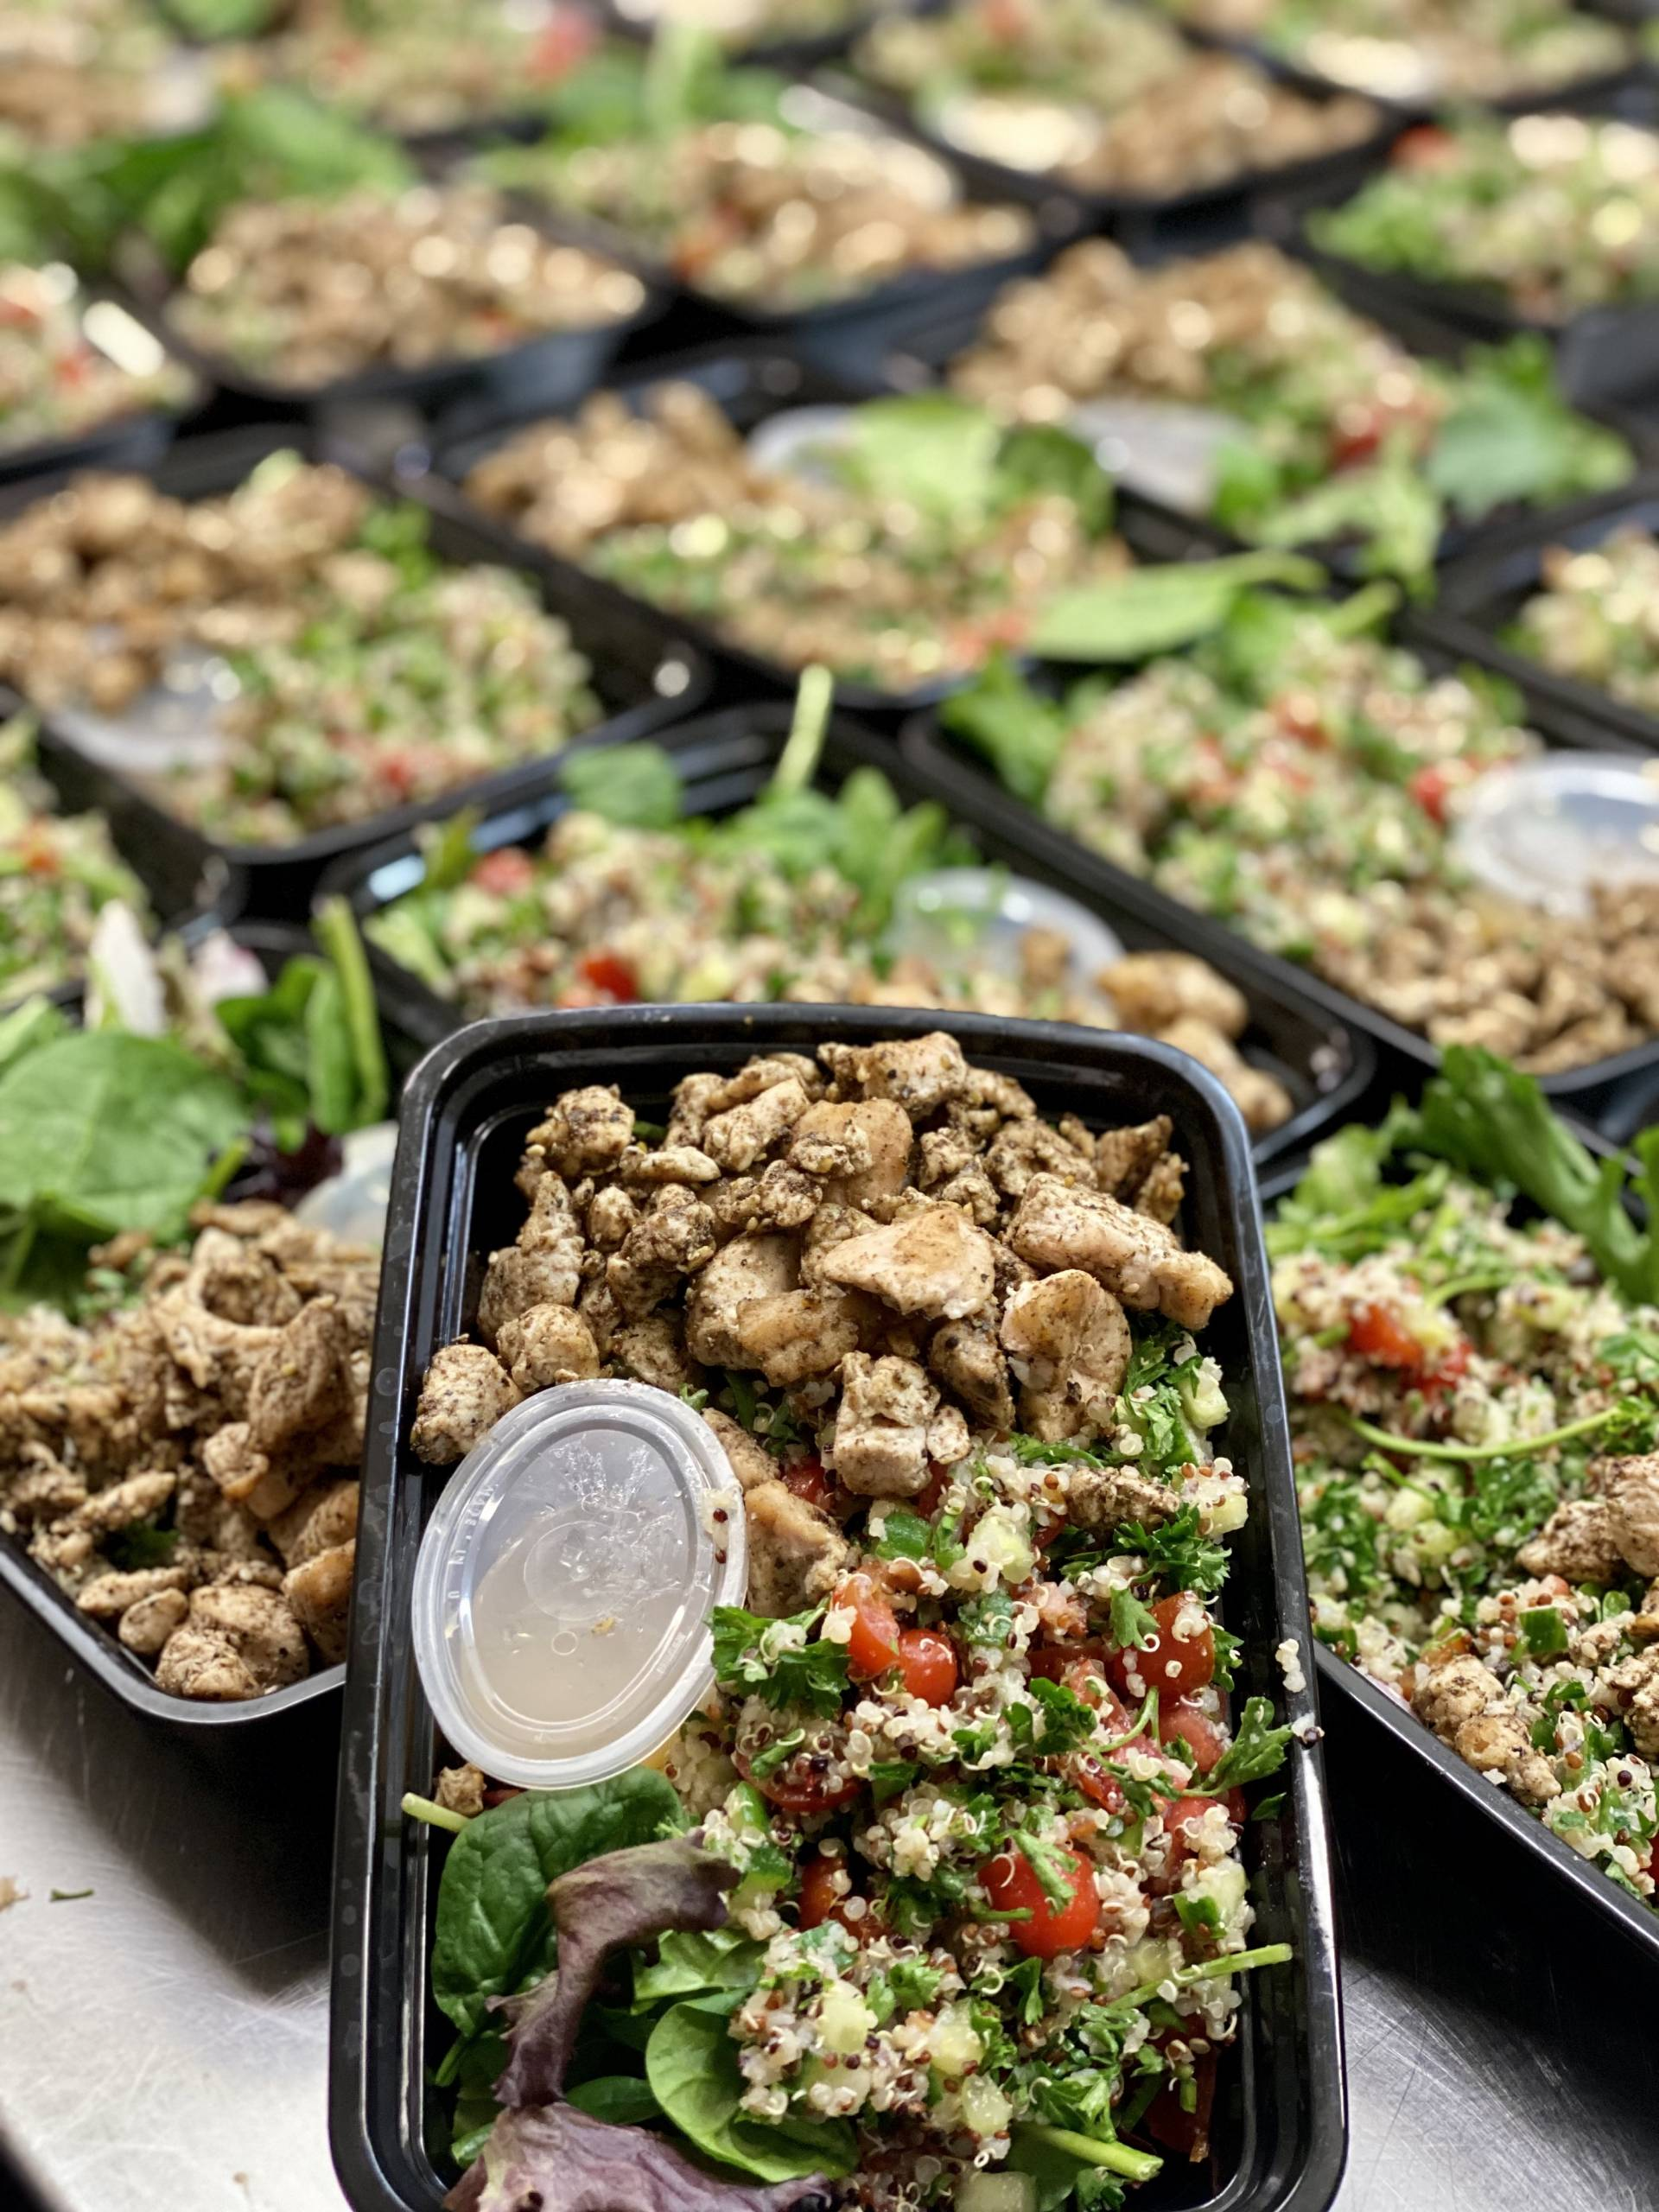 Quinoa Tabbouleh Salad with Herb Roasted Chicken and Green Goddess Dressing